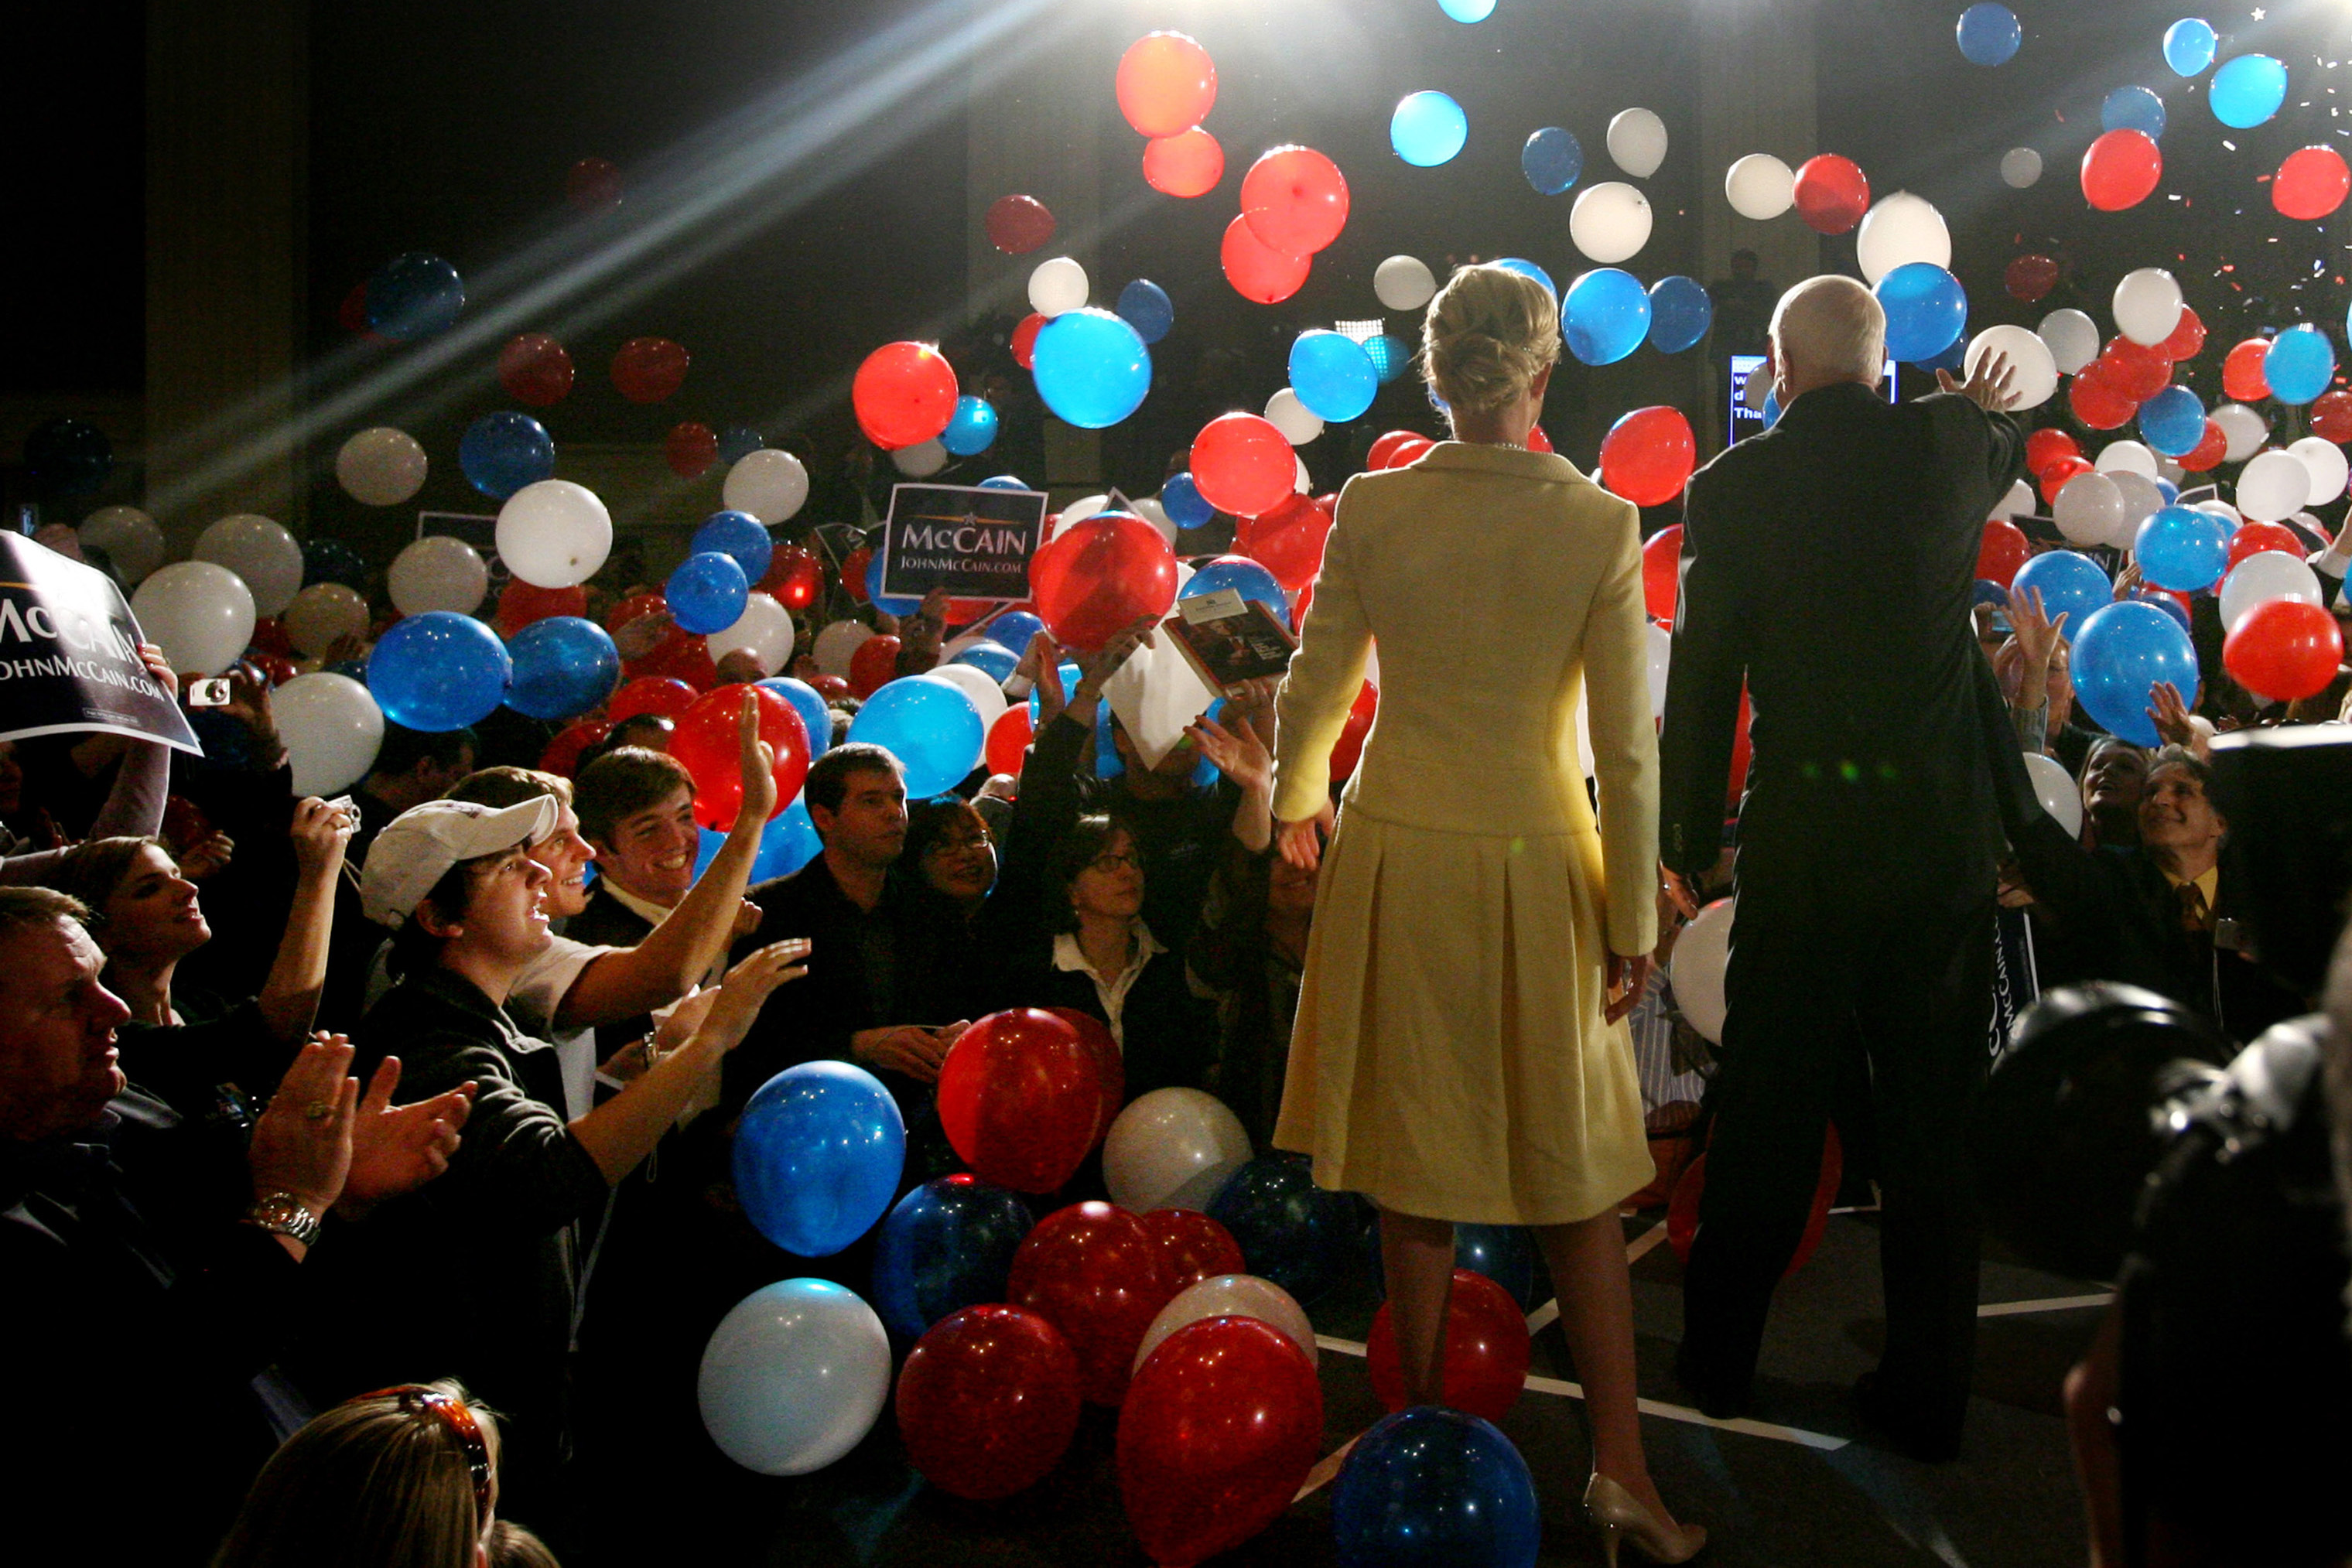 Sen. John McCain and wife Cindy greet supporters at a campaign rally at the Fairmont Dallas hotel on March 4, 2008.